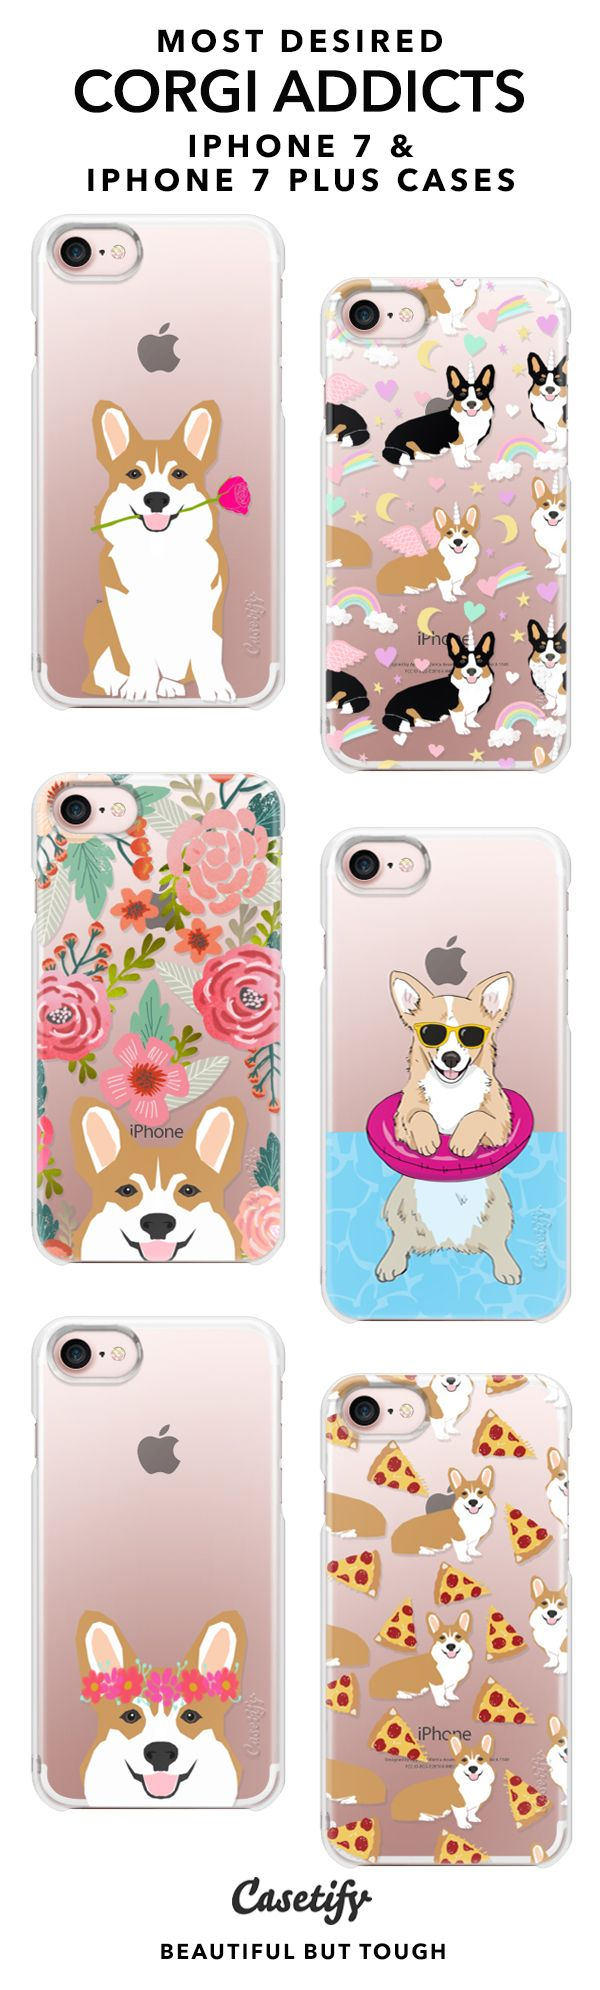 """""""Two roads diverged in a wood, I followed the Corgi."""" 